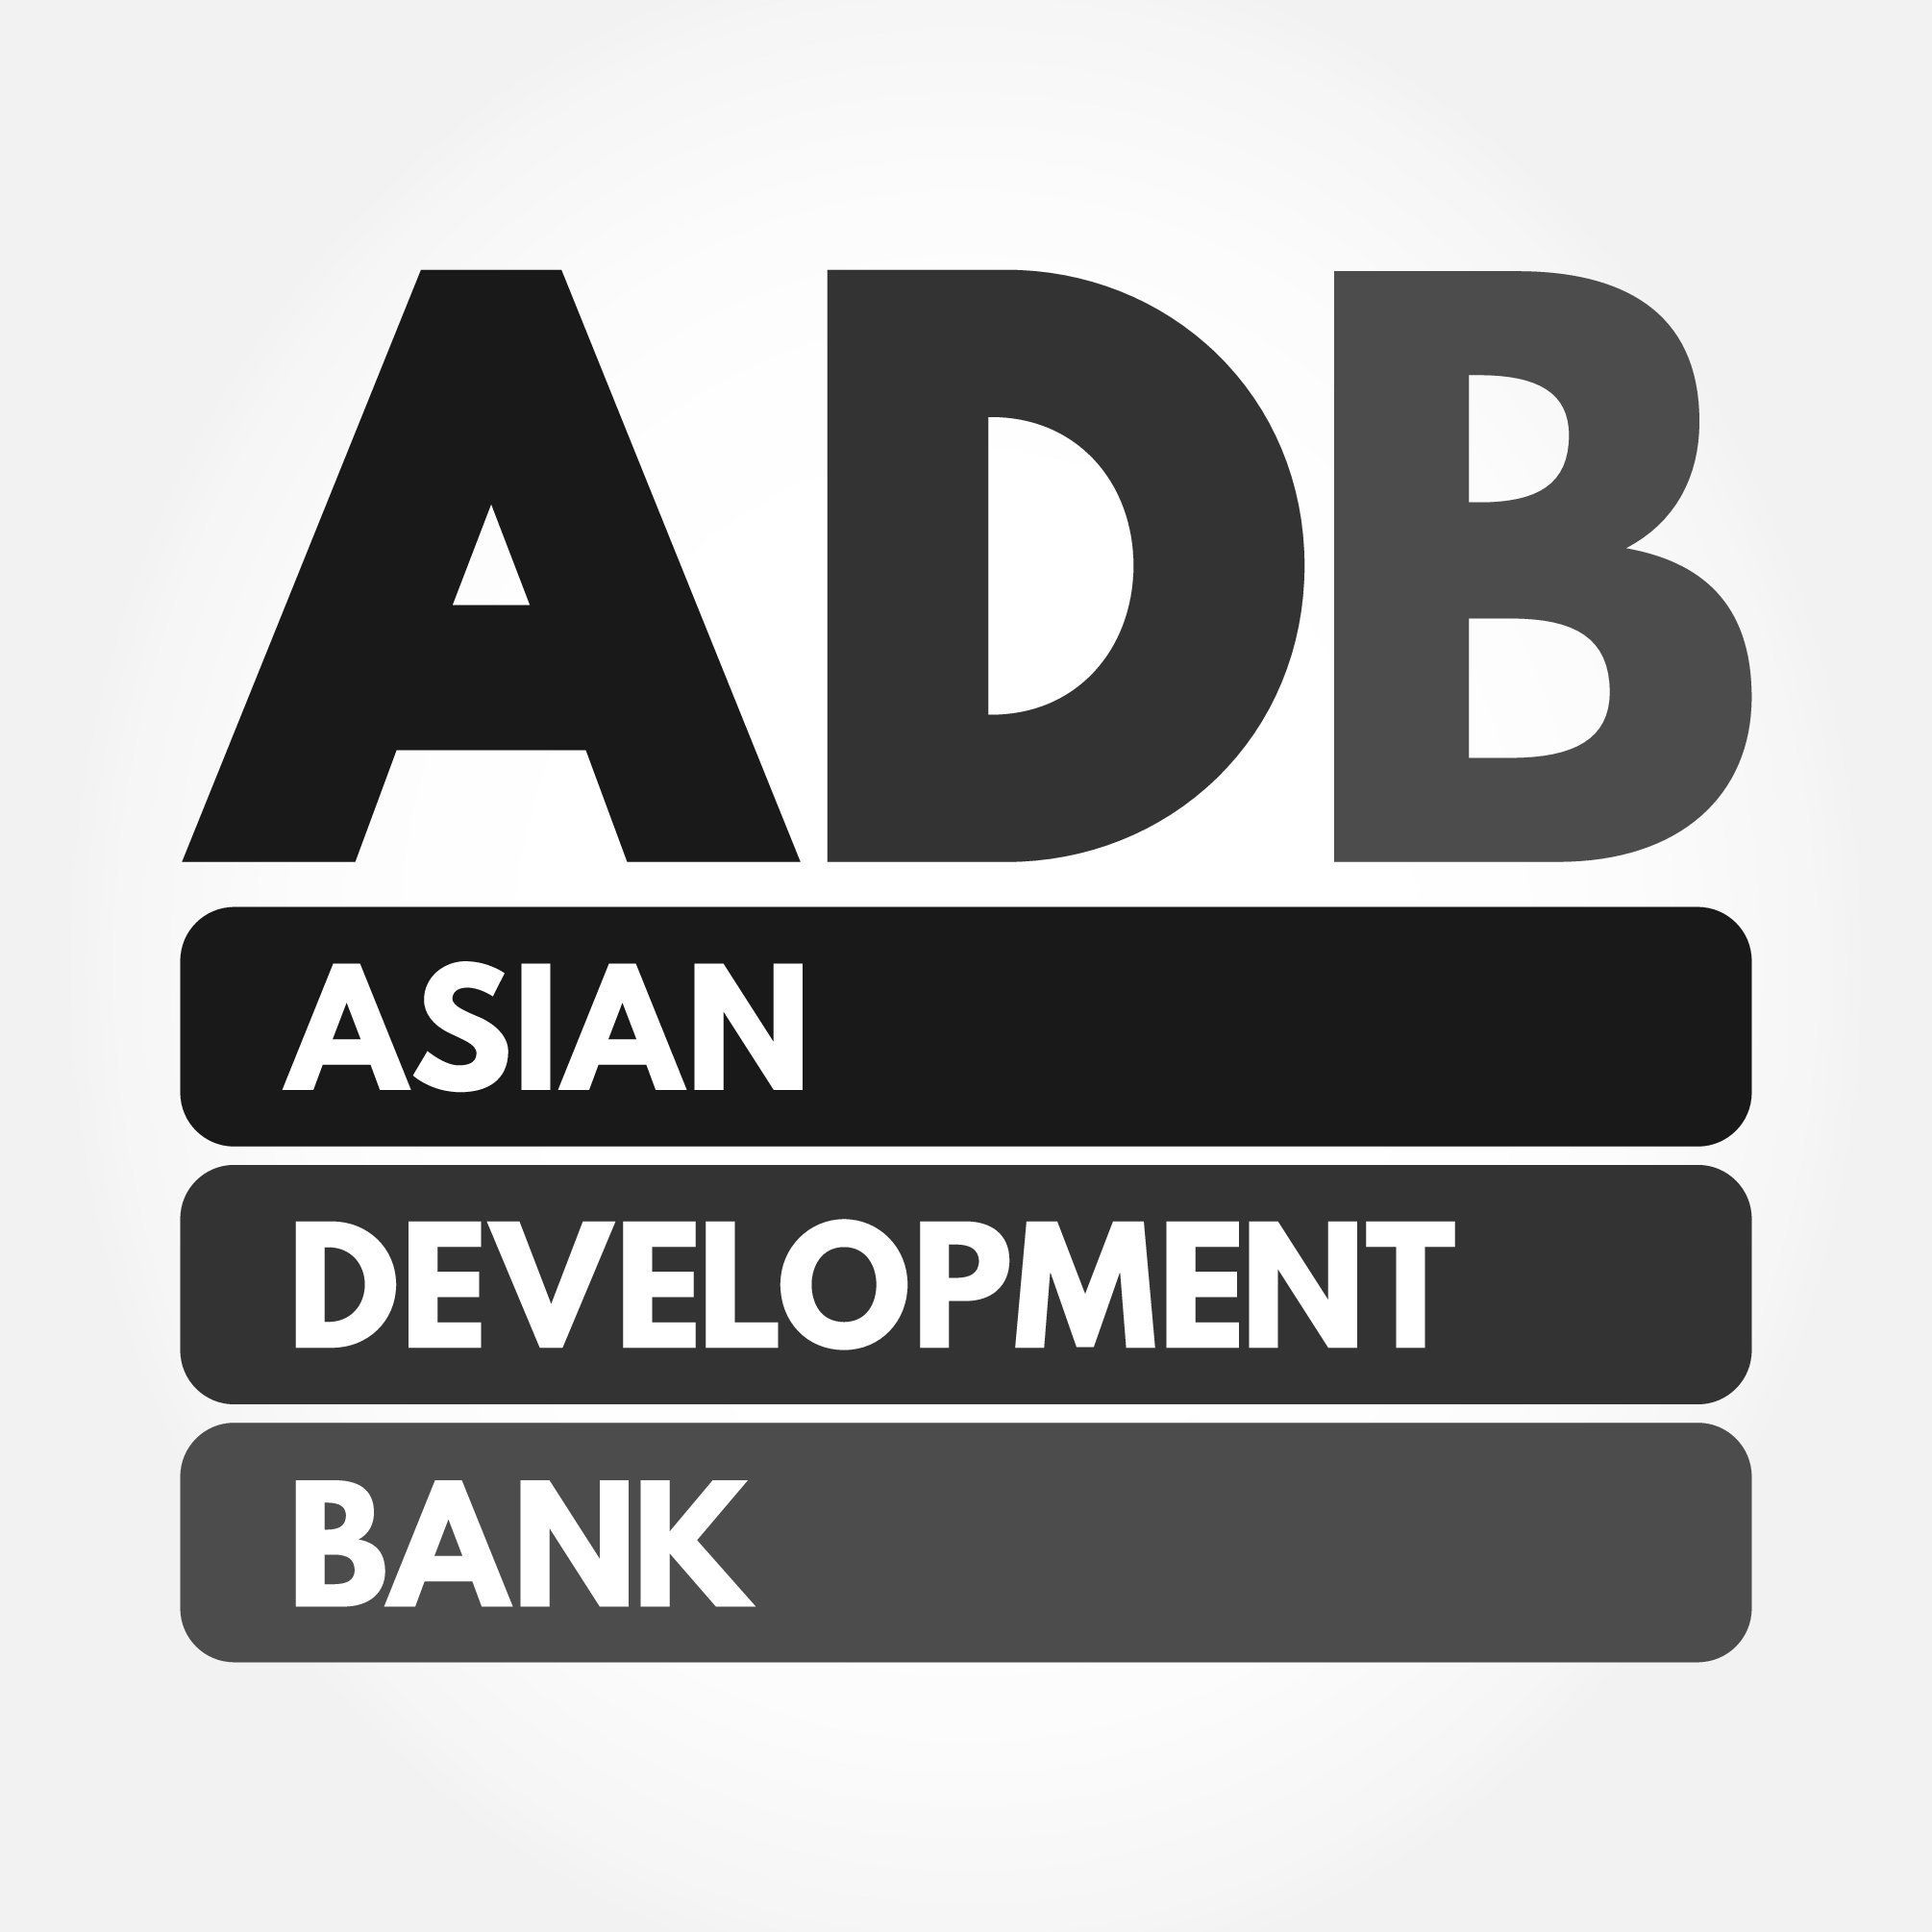 Asian Development Bank Announces 20b Package For Developing Countries Chicago Events Police Activities Stand Down